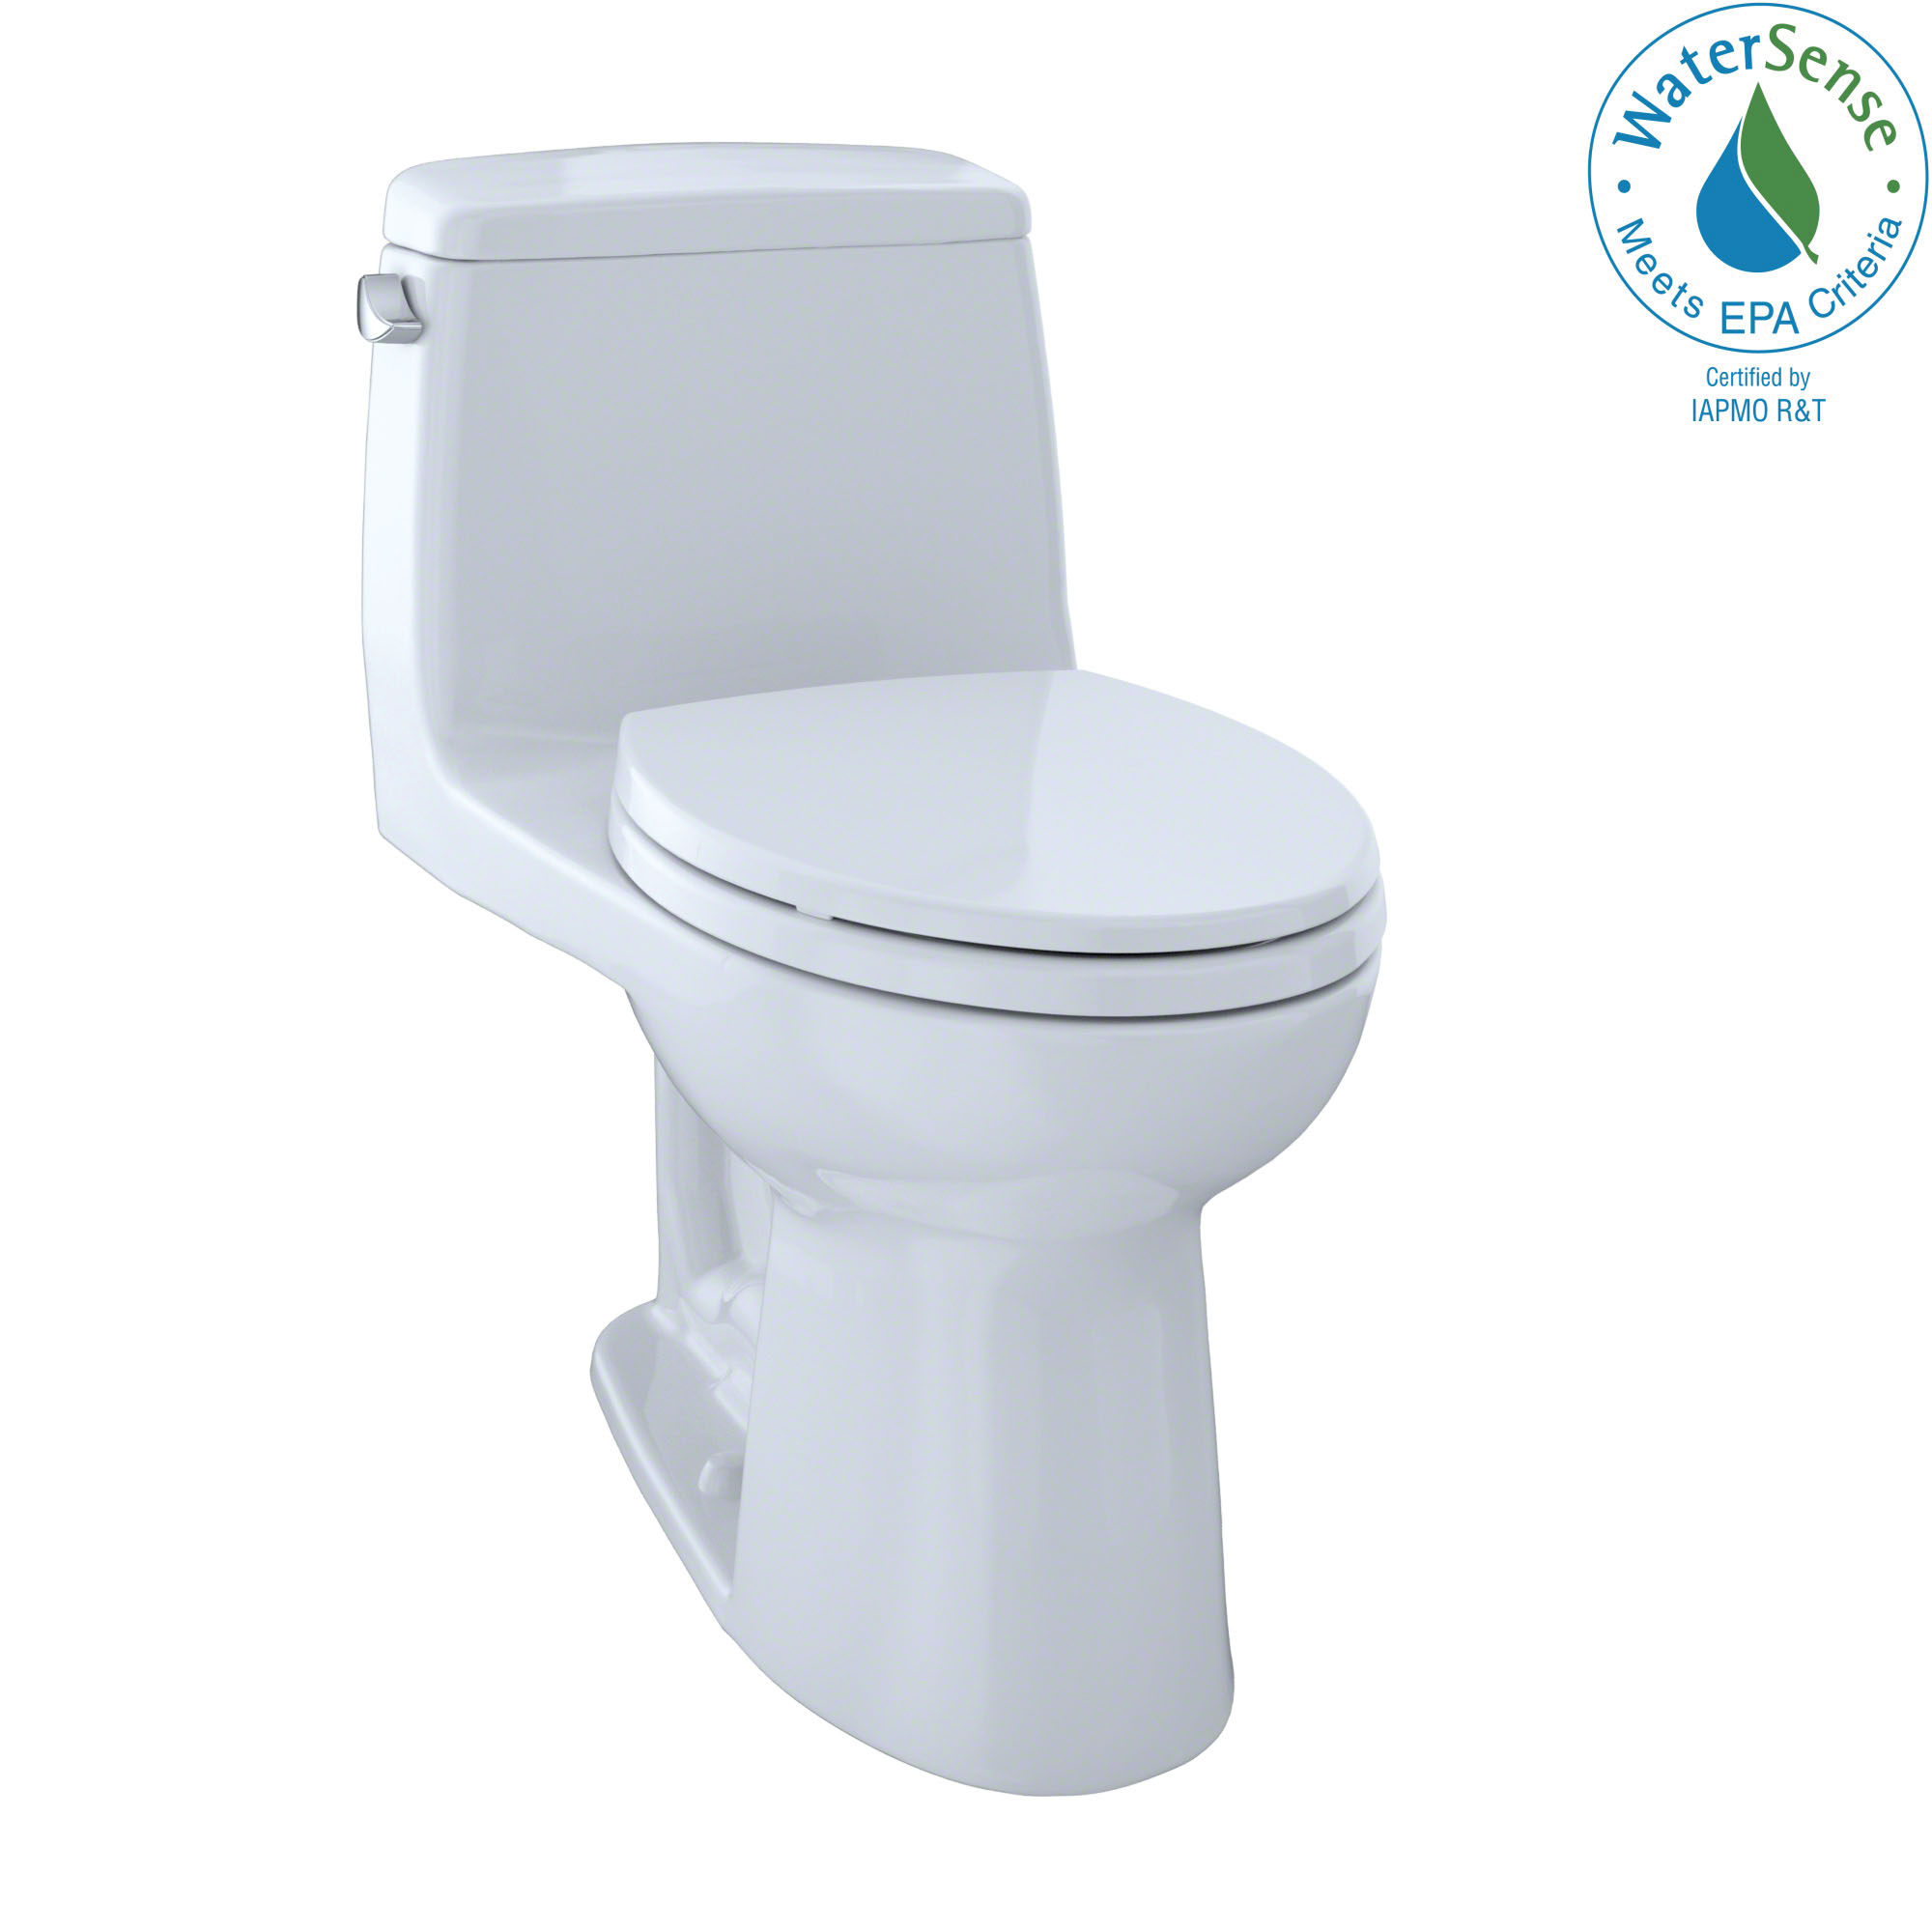 Toto® MS854114E#01 1-Piece Universal Height Toilet With Left-Hand Chrome Trip Lever, Eco UltraMax®, Elongated Bowl, 15-11/16 in H Rim, 12 in Rough-In, 1.28 gpf, Cotton White, Domestic